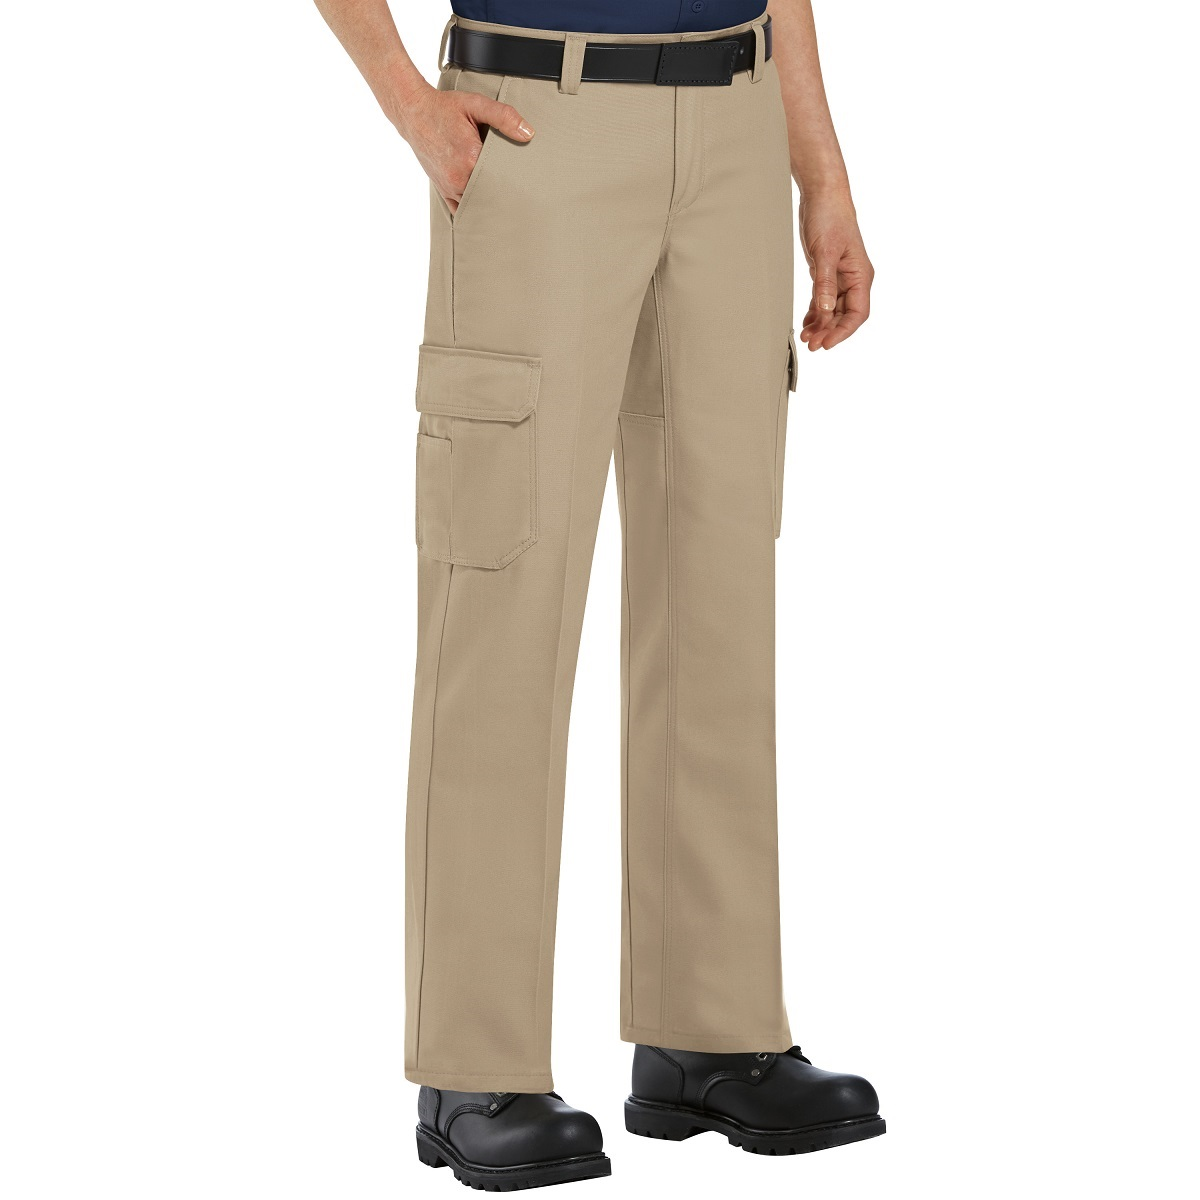 Fantastic Dickies Womens Work Pants DuraComfort Trouser Relaxed Fit FP119 Pant